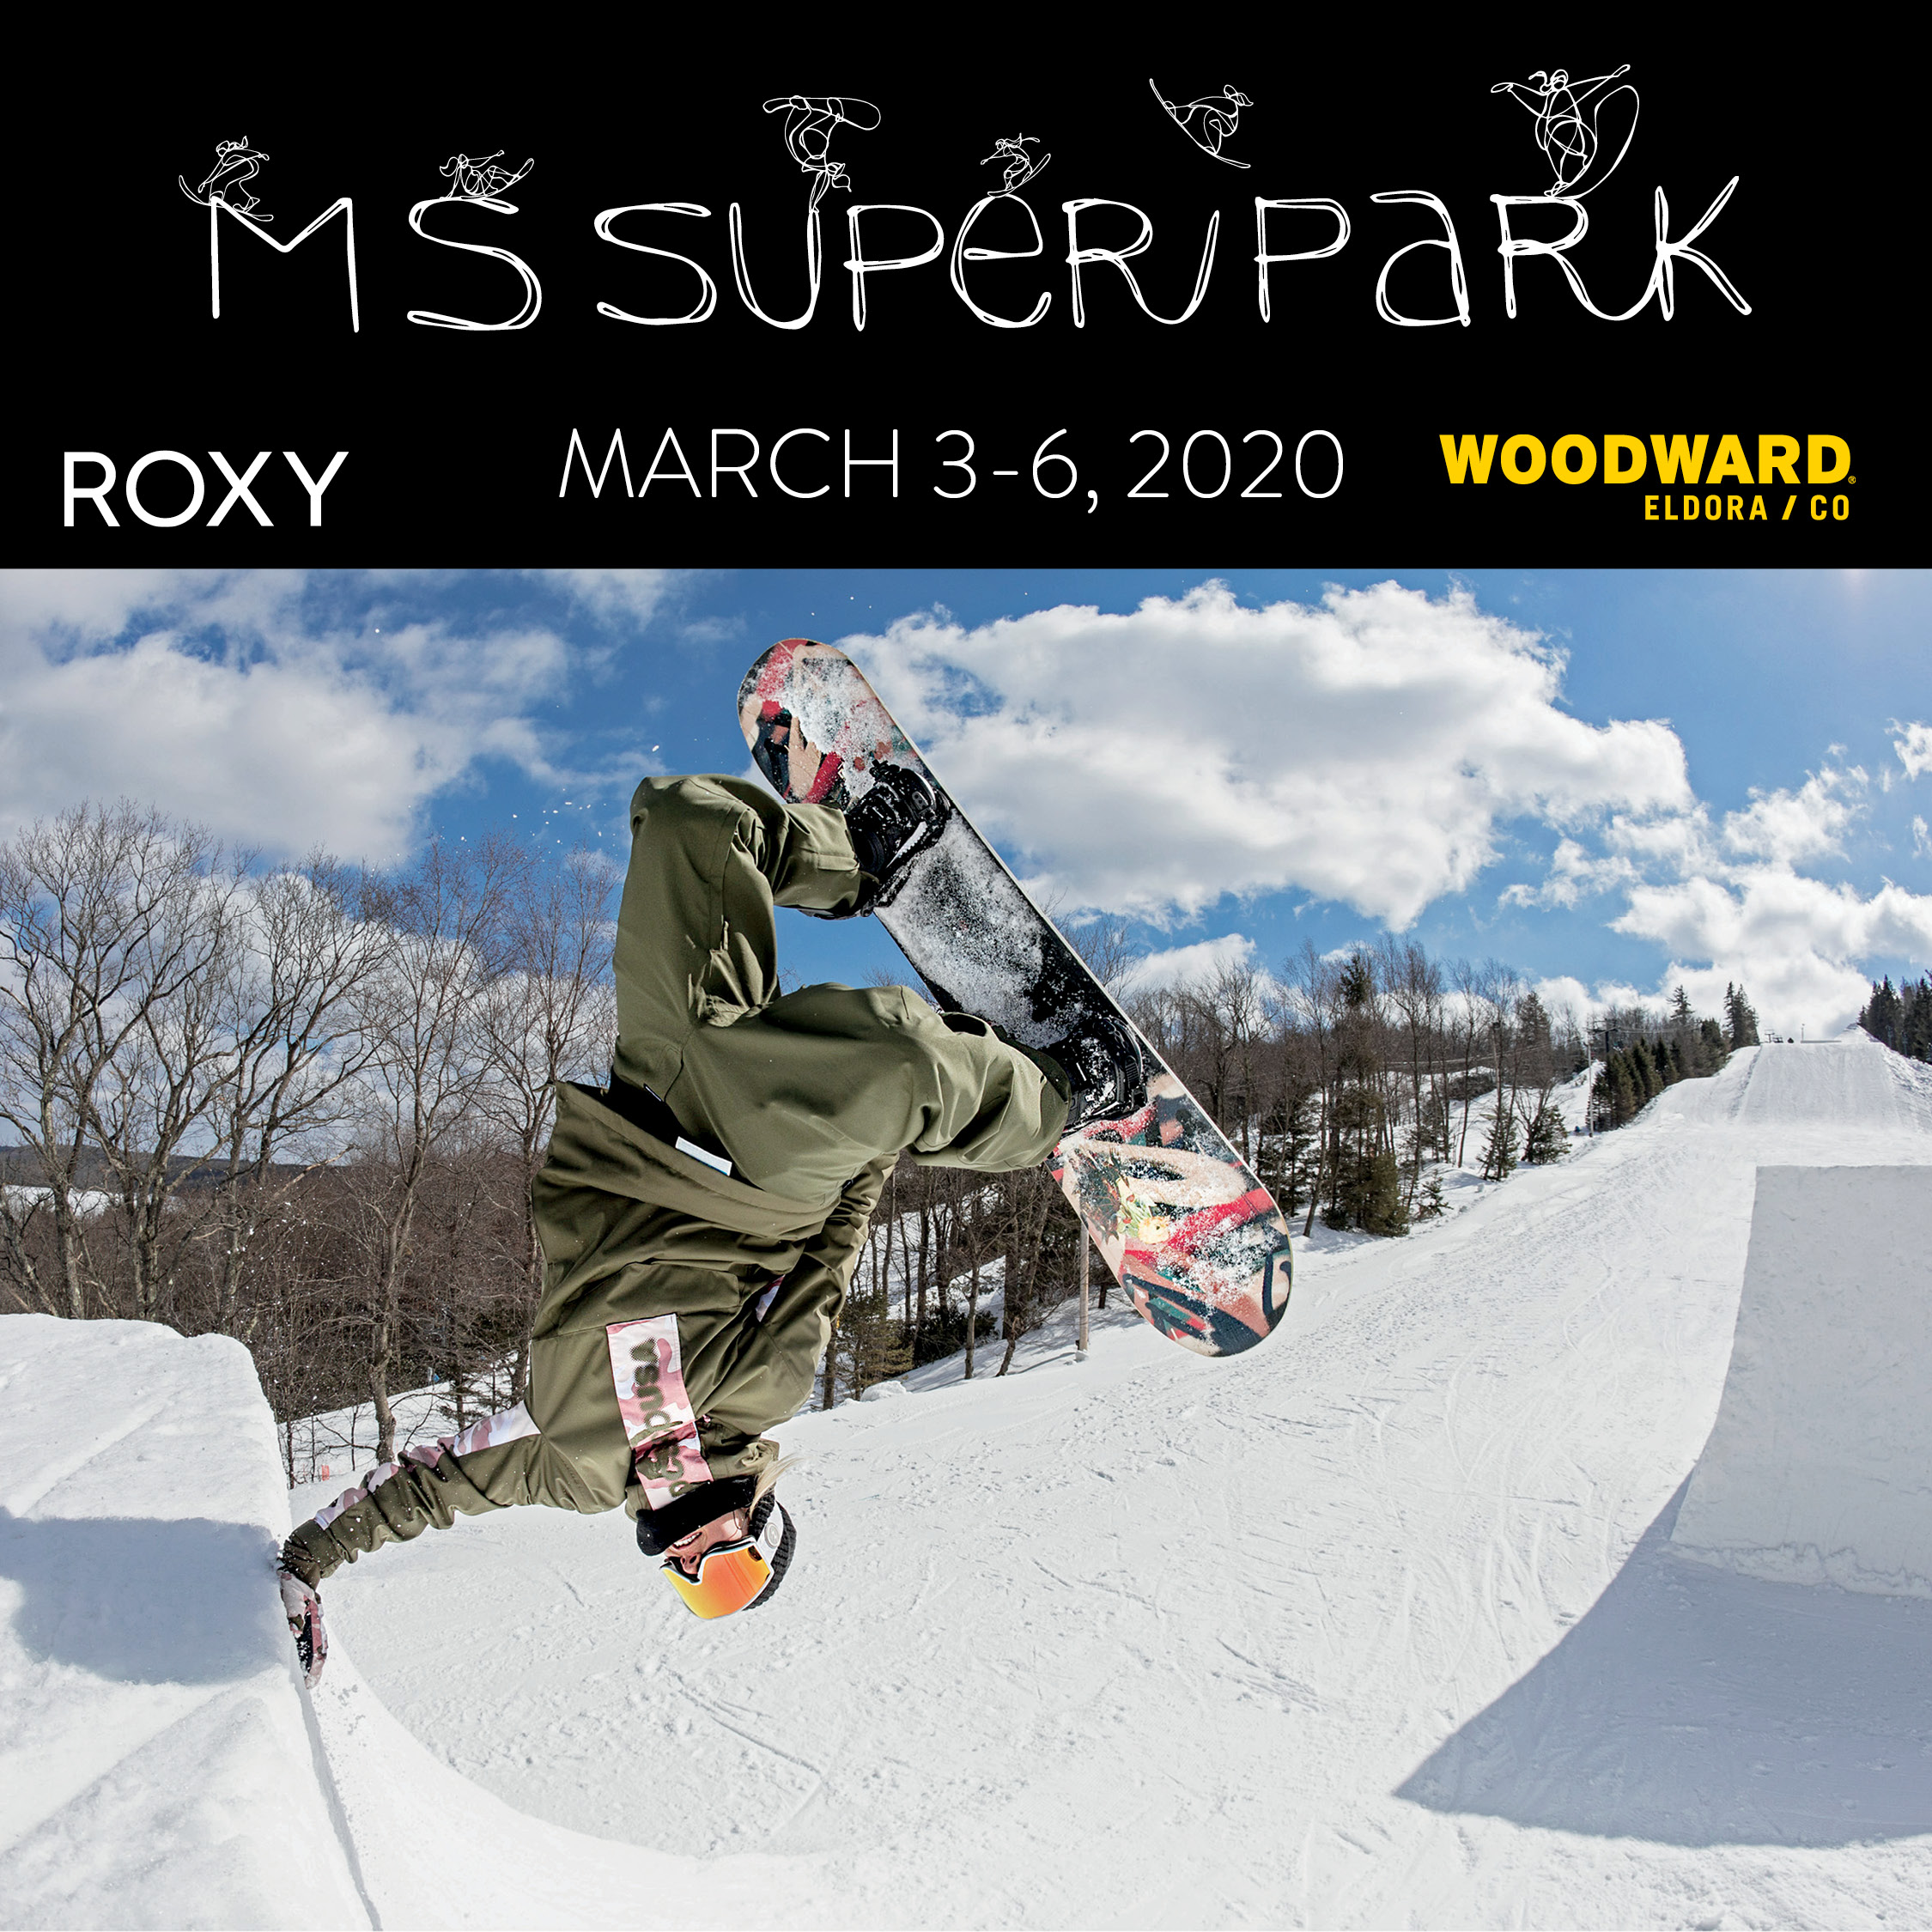 Ms Superpark